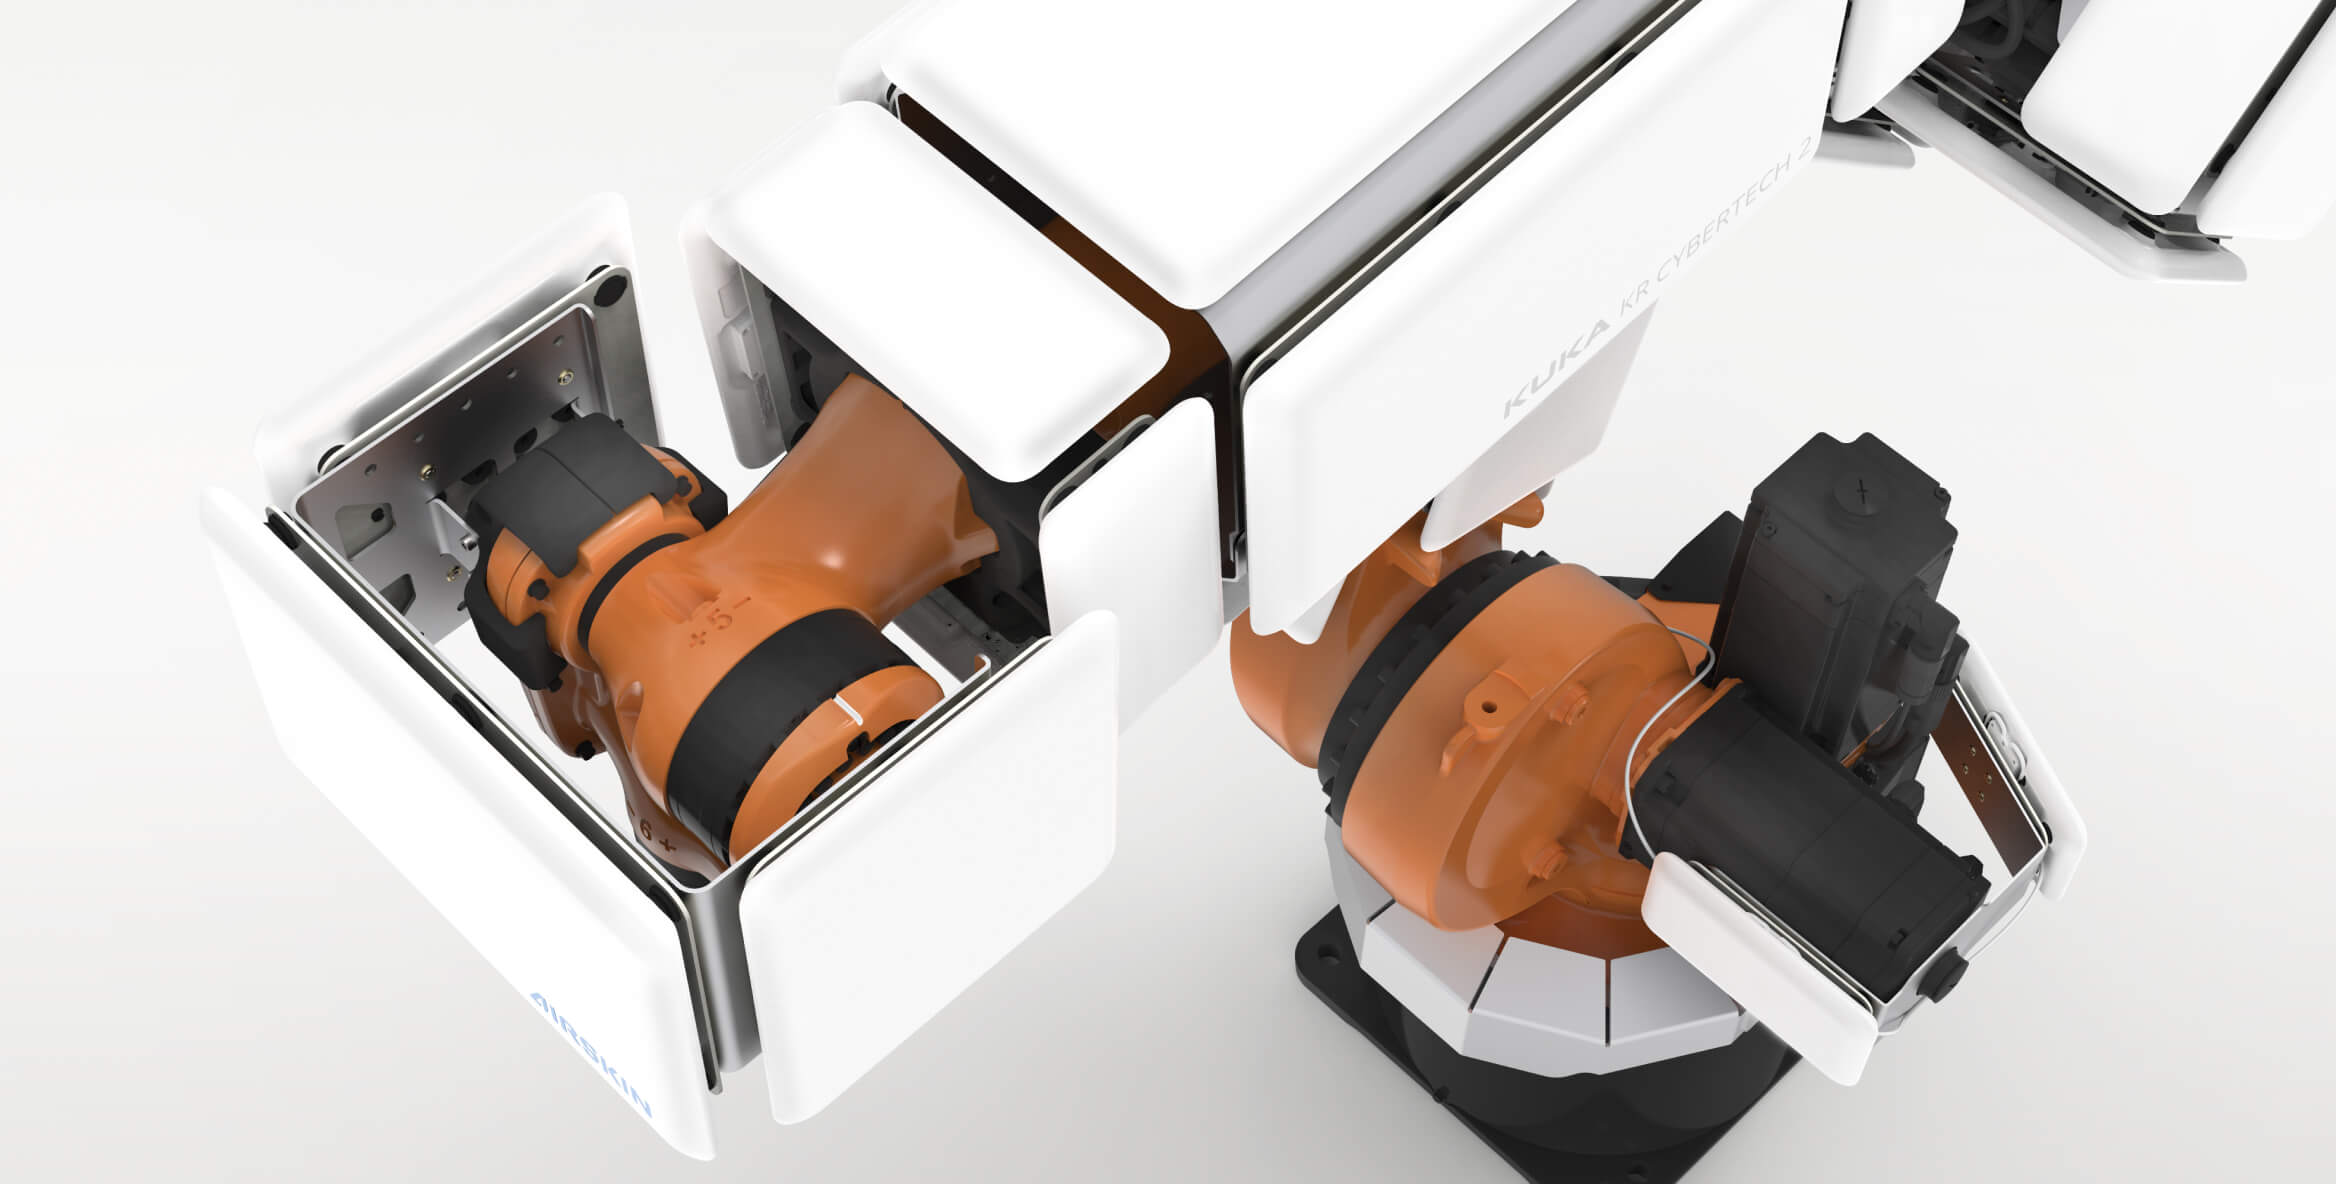 airskin module pads mounted on a collaborative robot